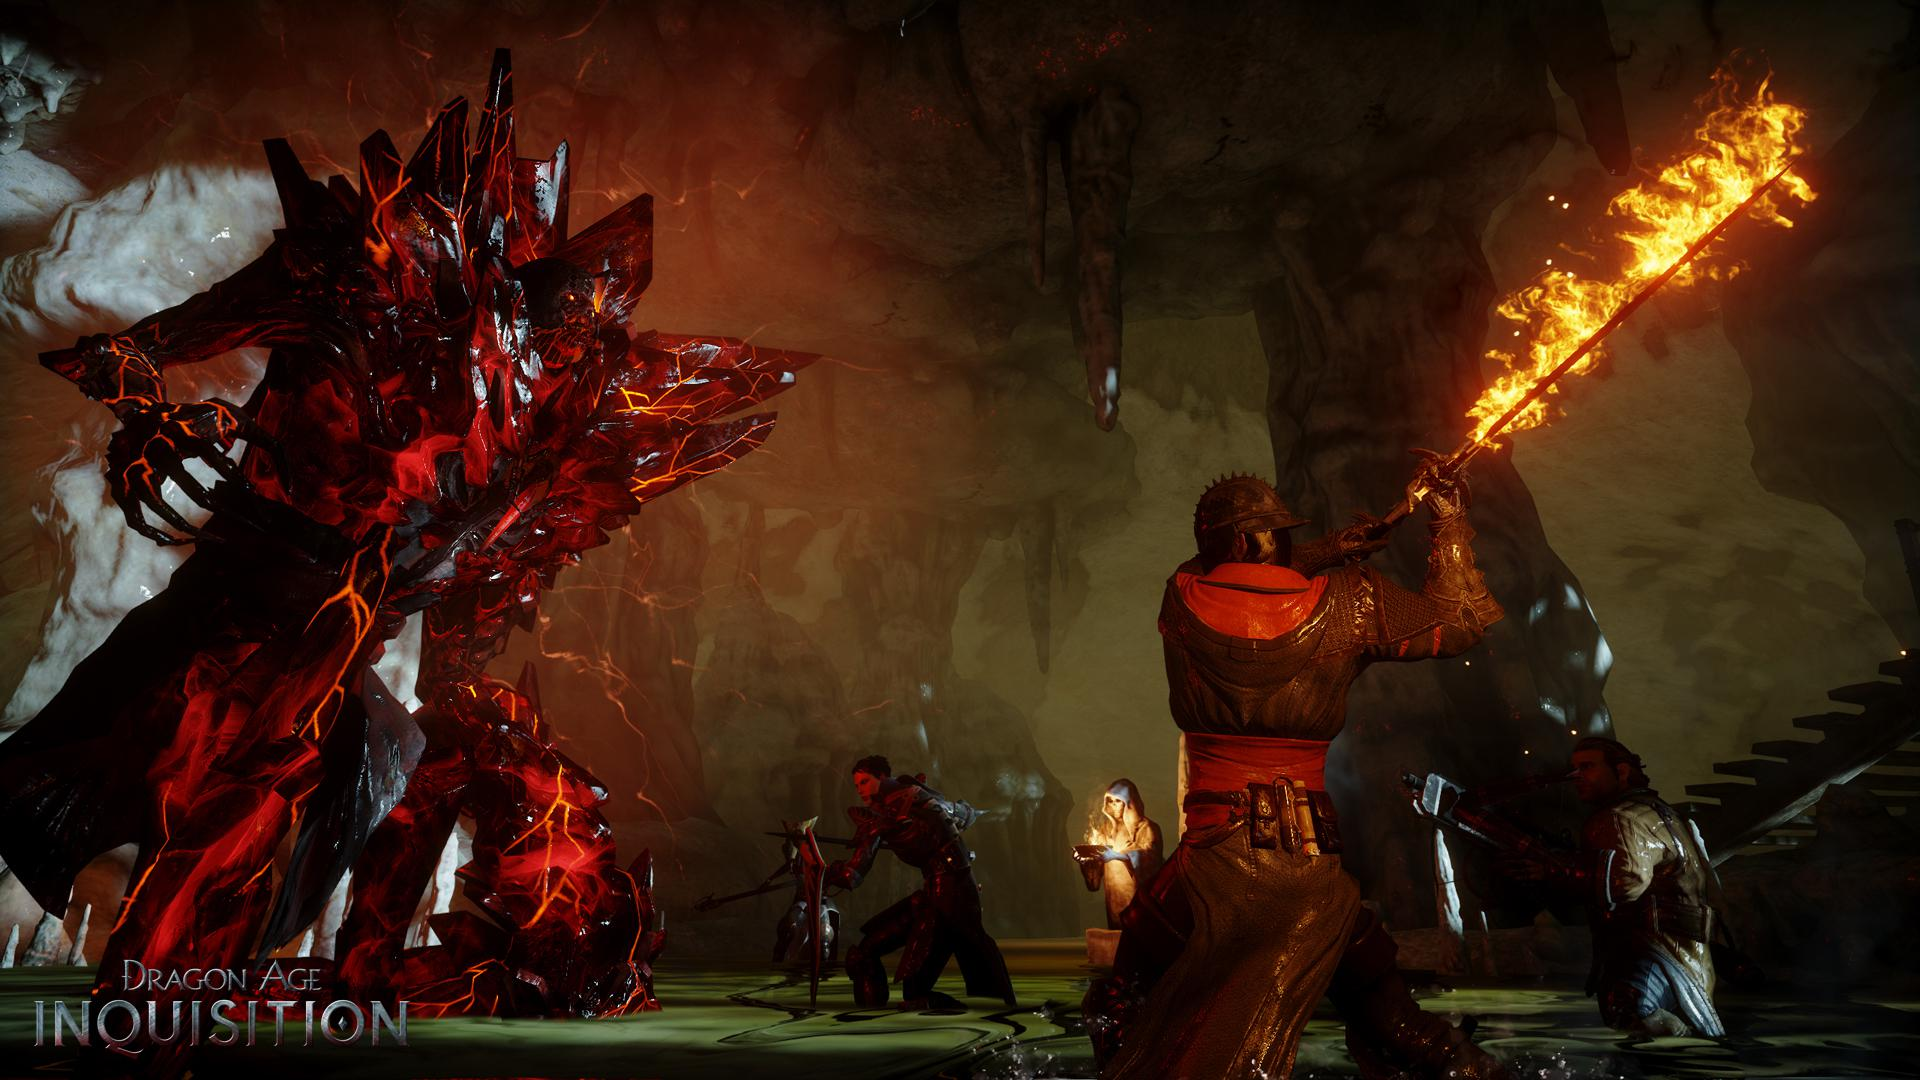 Dragon Age Bioware Video Games Rpg Fantasy Art: Dragon Age: Inquisition Learns The Lessons Of Its Past